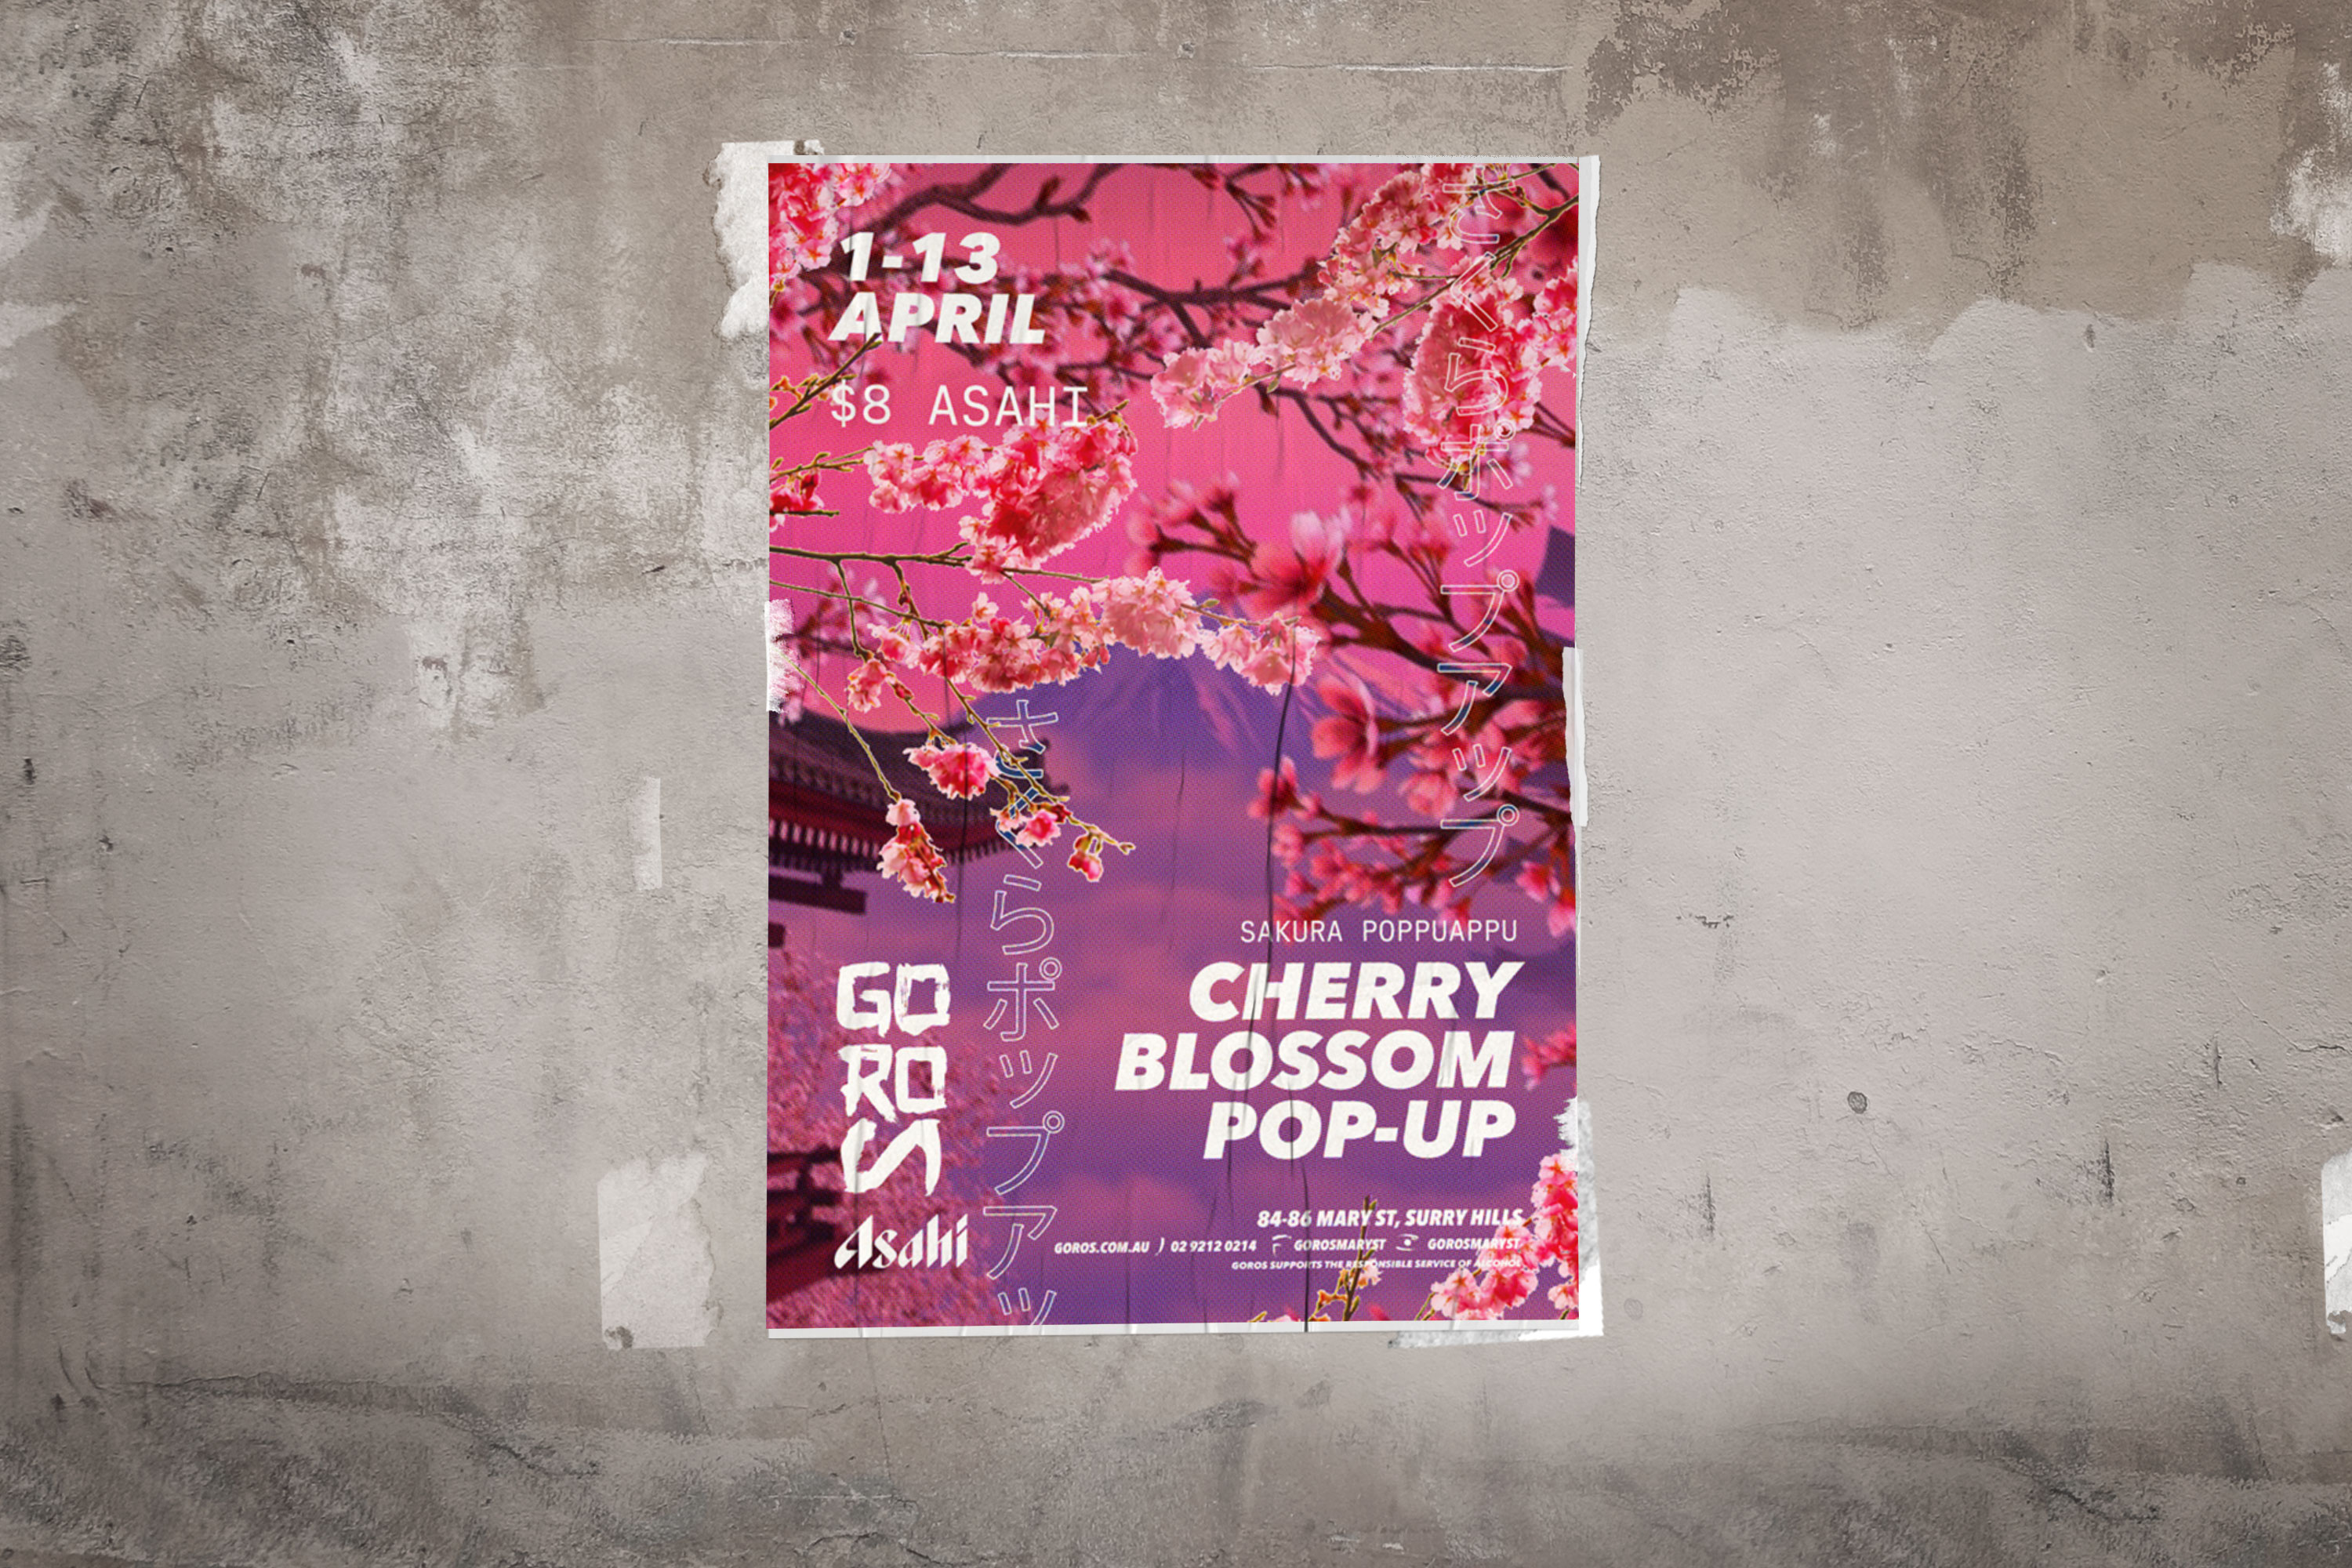 event poster design for goros